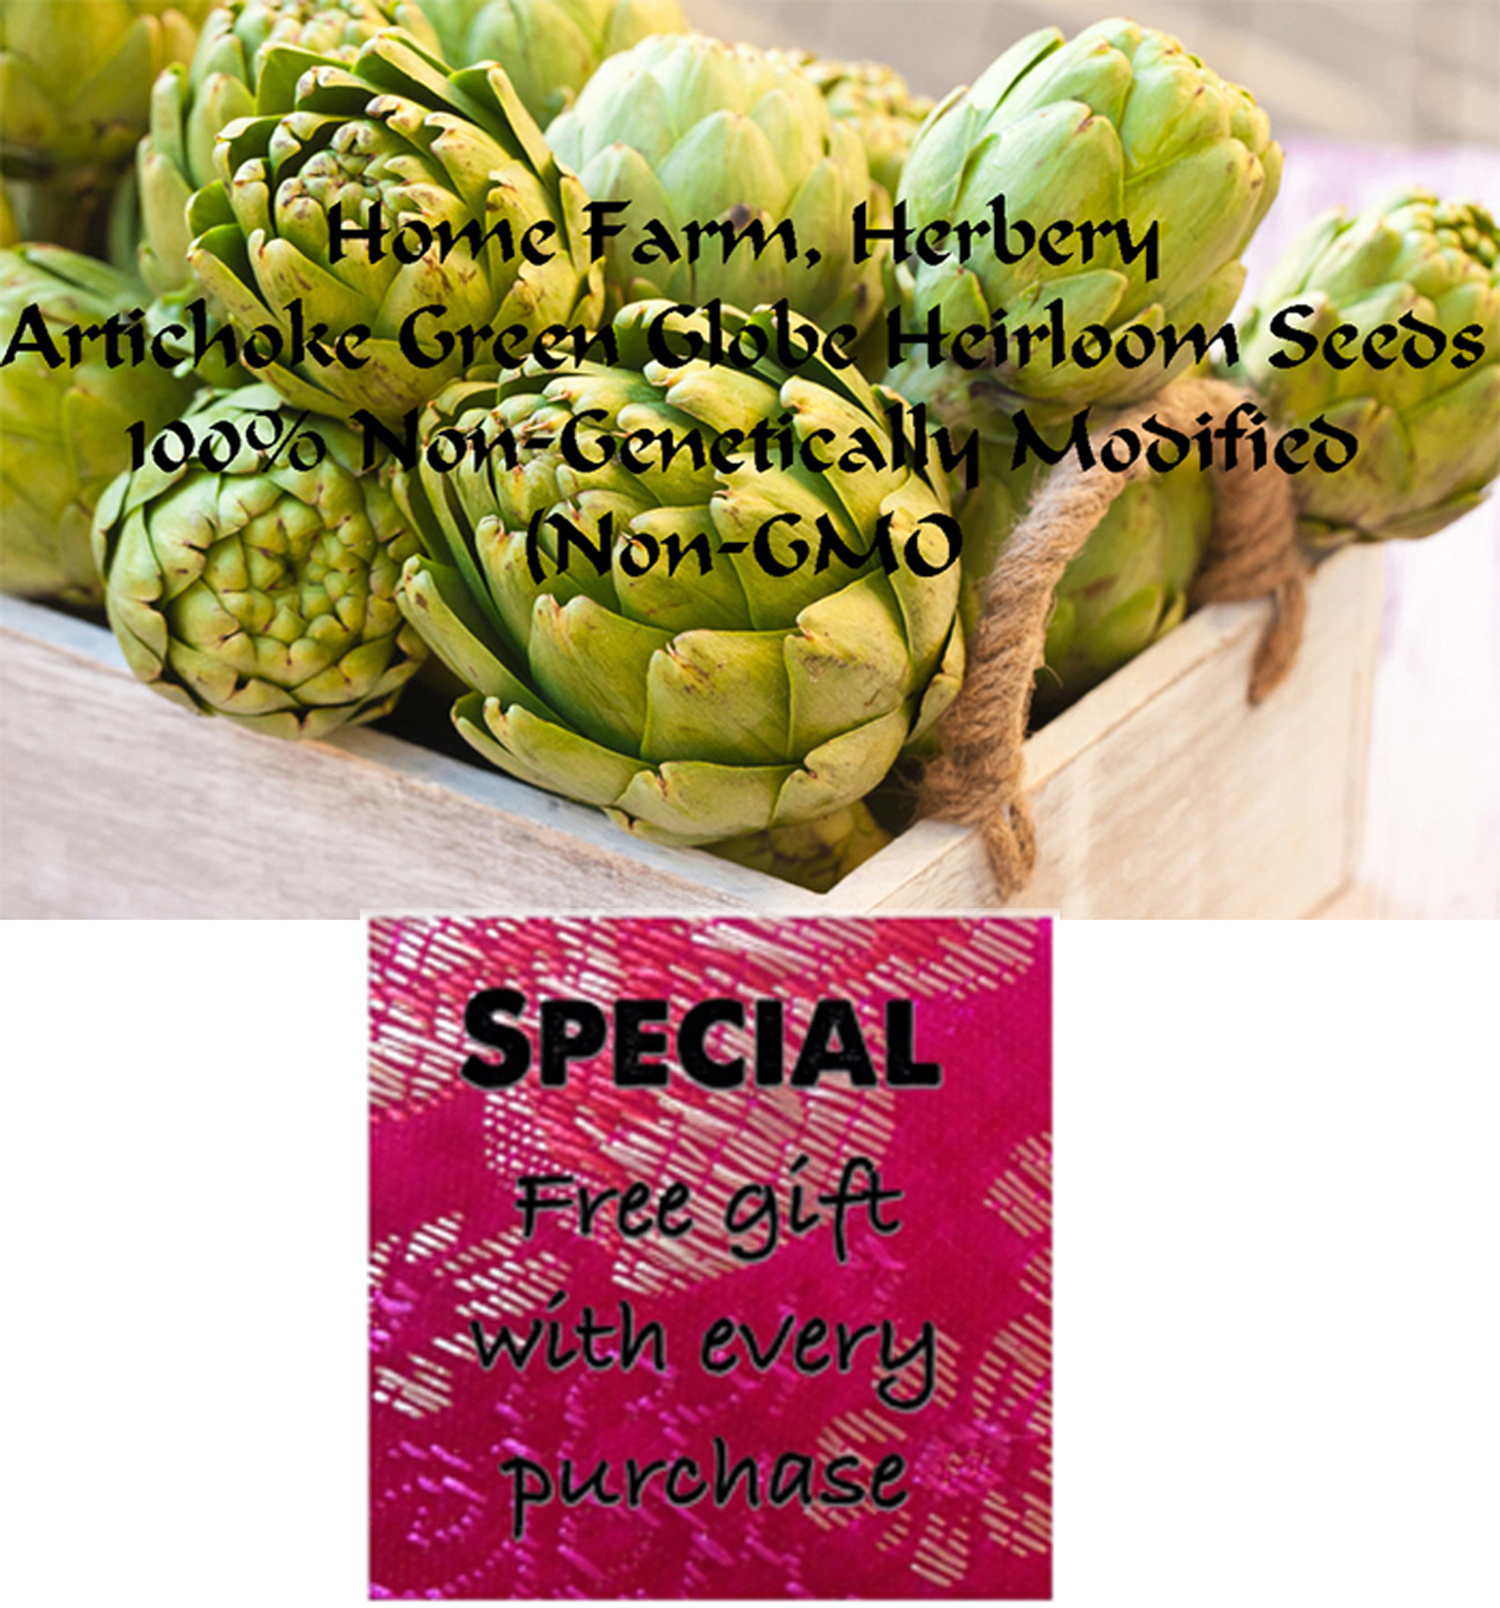 Order the best heirloom Artichoke Green Globe seeds now and get a free gift